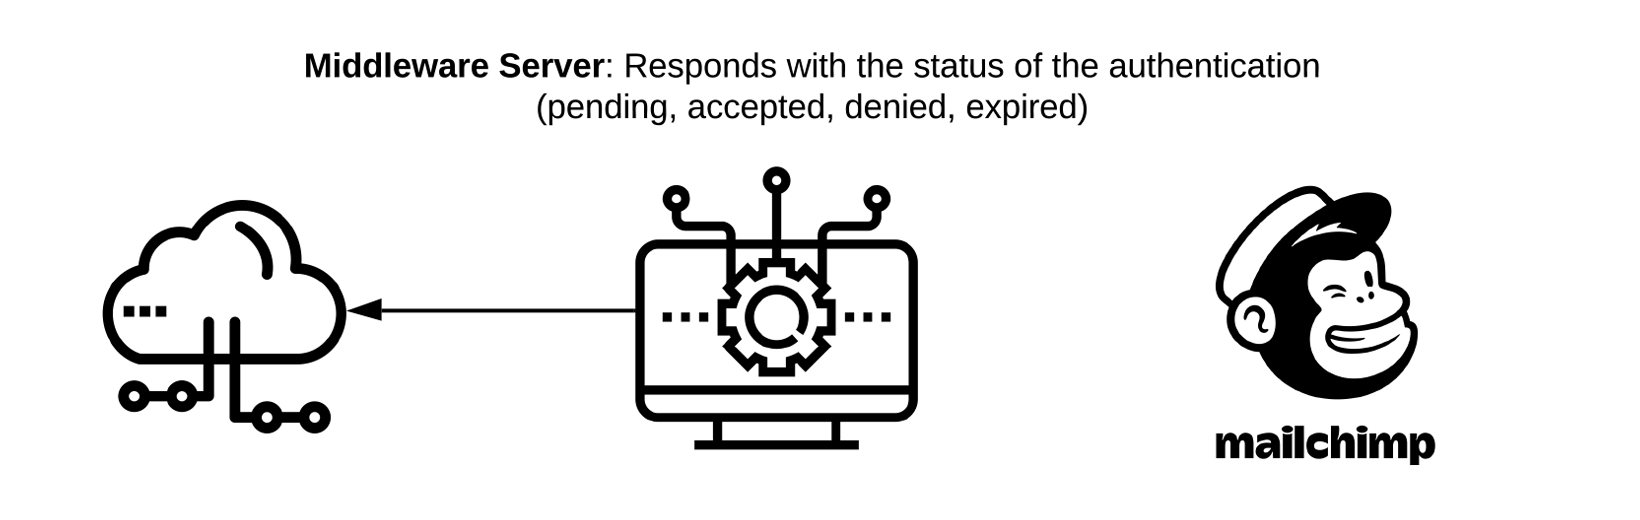 Middleware Server: Responds with the status of the authentication(pending,accepted,denied,expired)